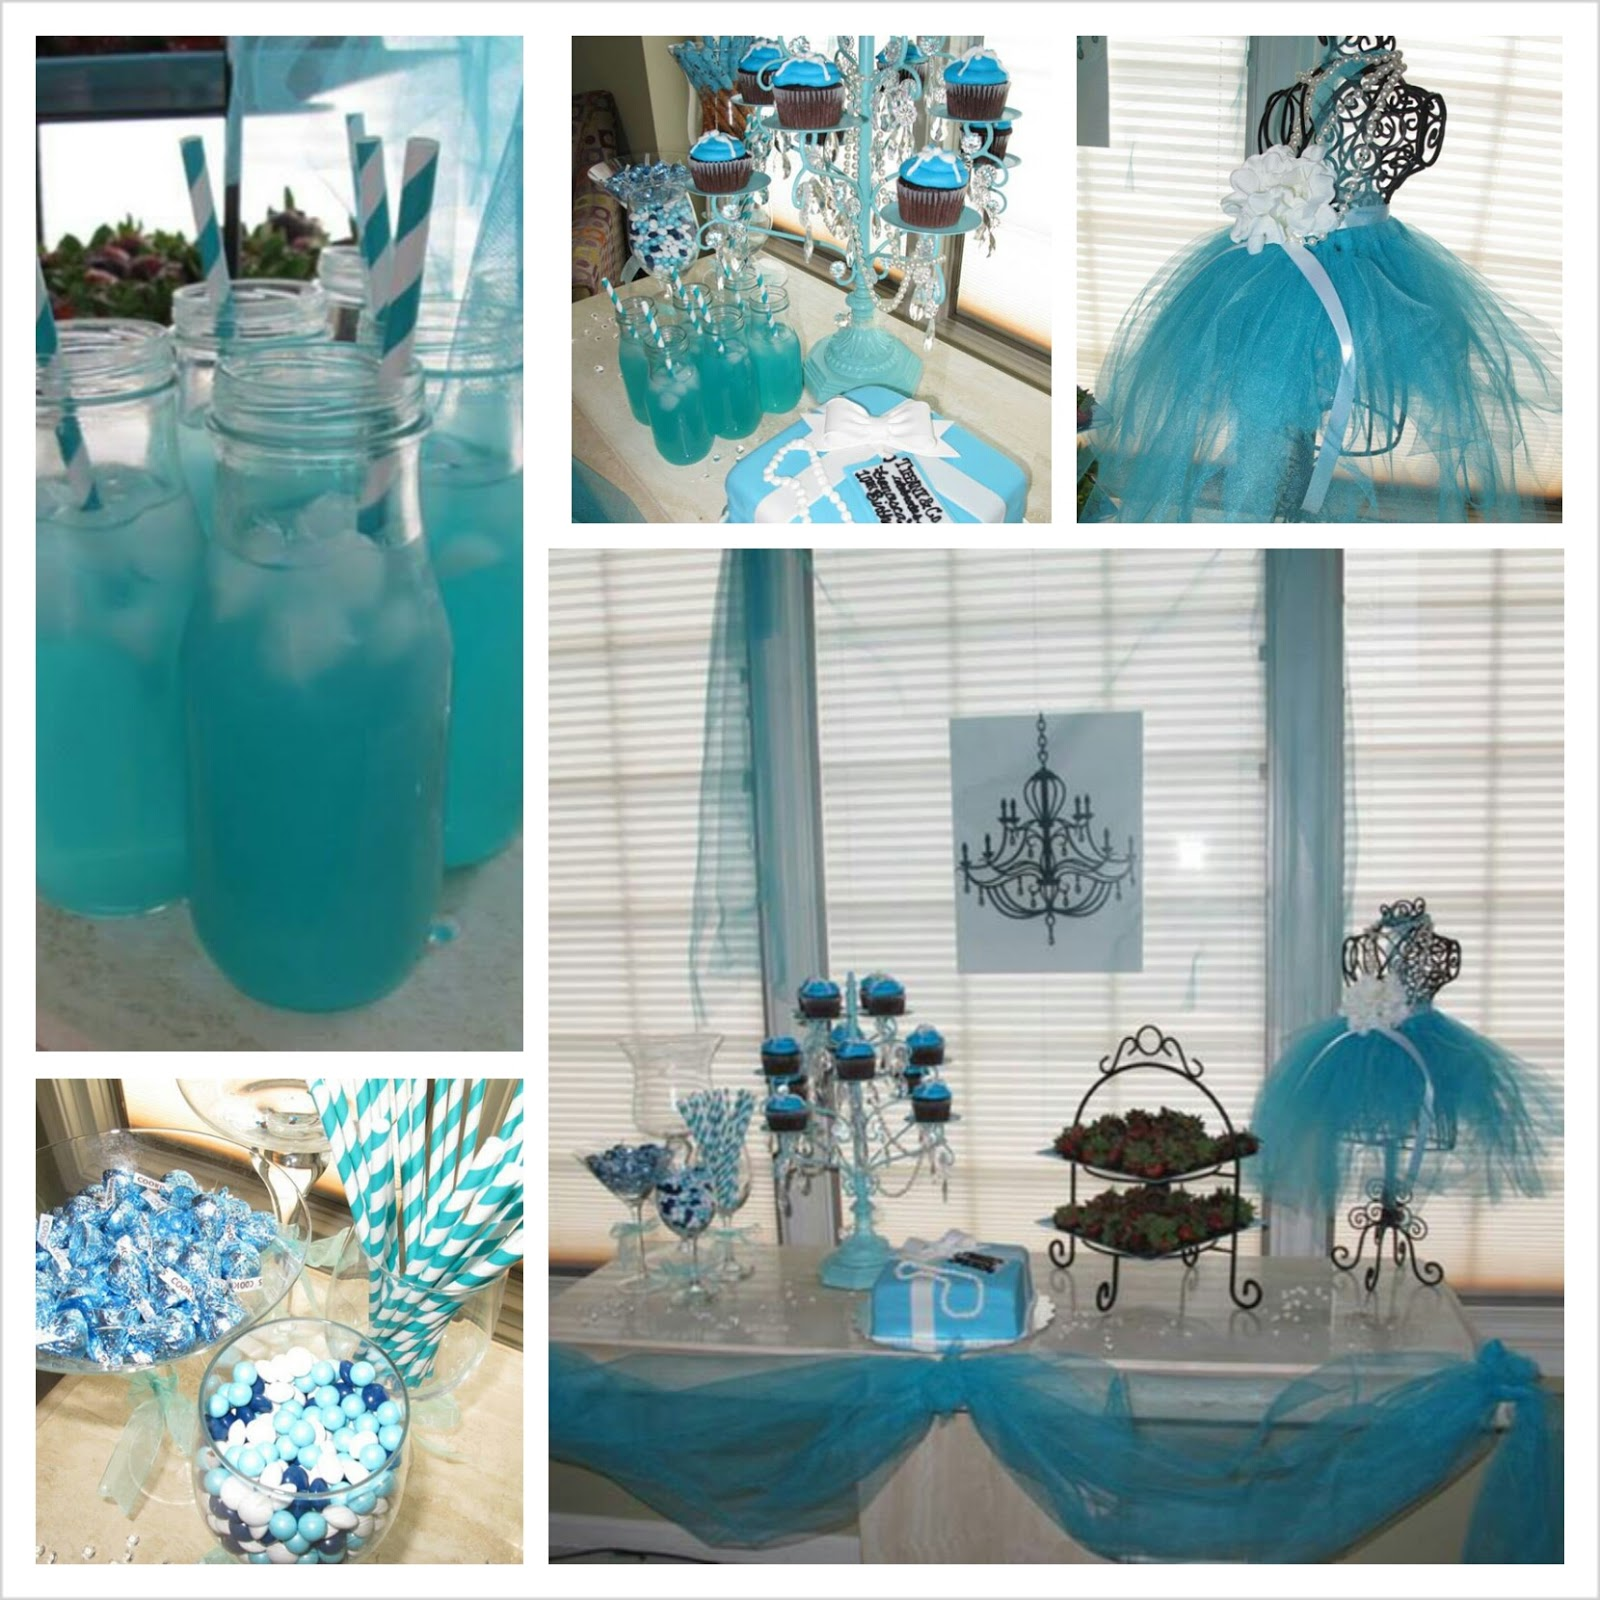 Events By Ellie: Turning Ten with Tea at Tiffany Birthday